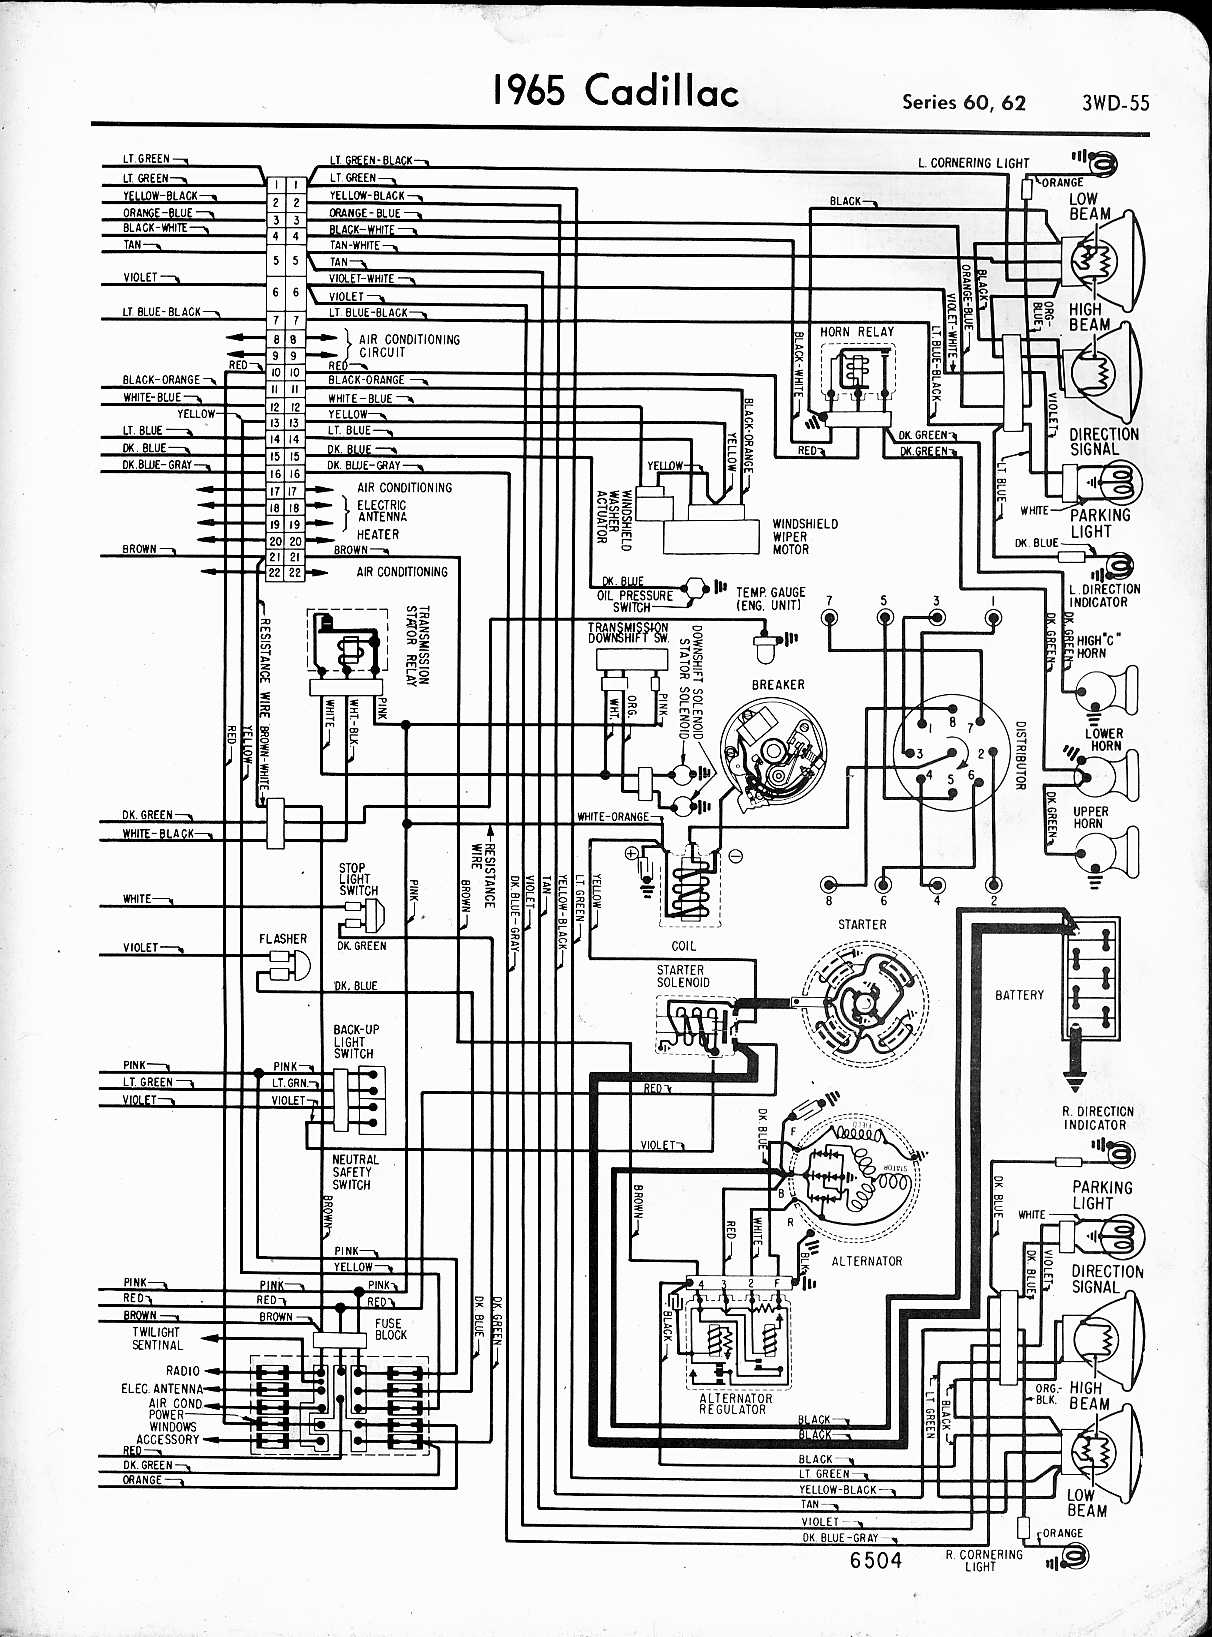 [DIAGRAM_38IU]  365 2000 Cadillac Deville Wiring Diagram | Wiring Library | 2000 Cadillac Eldorado Engine Diagram |  | Wiring Library